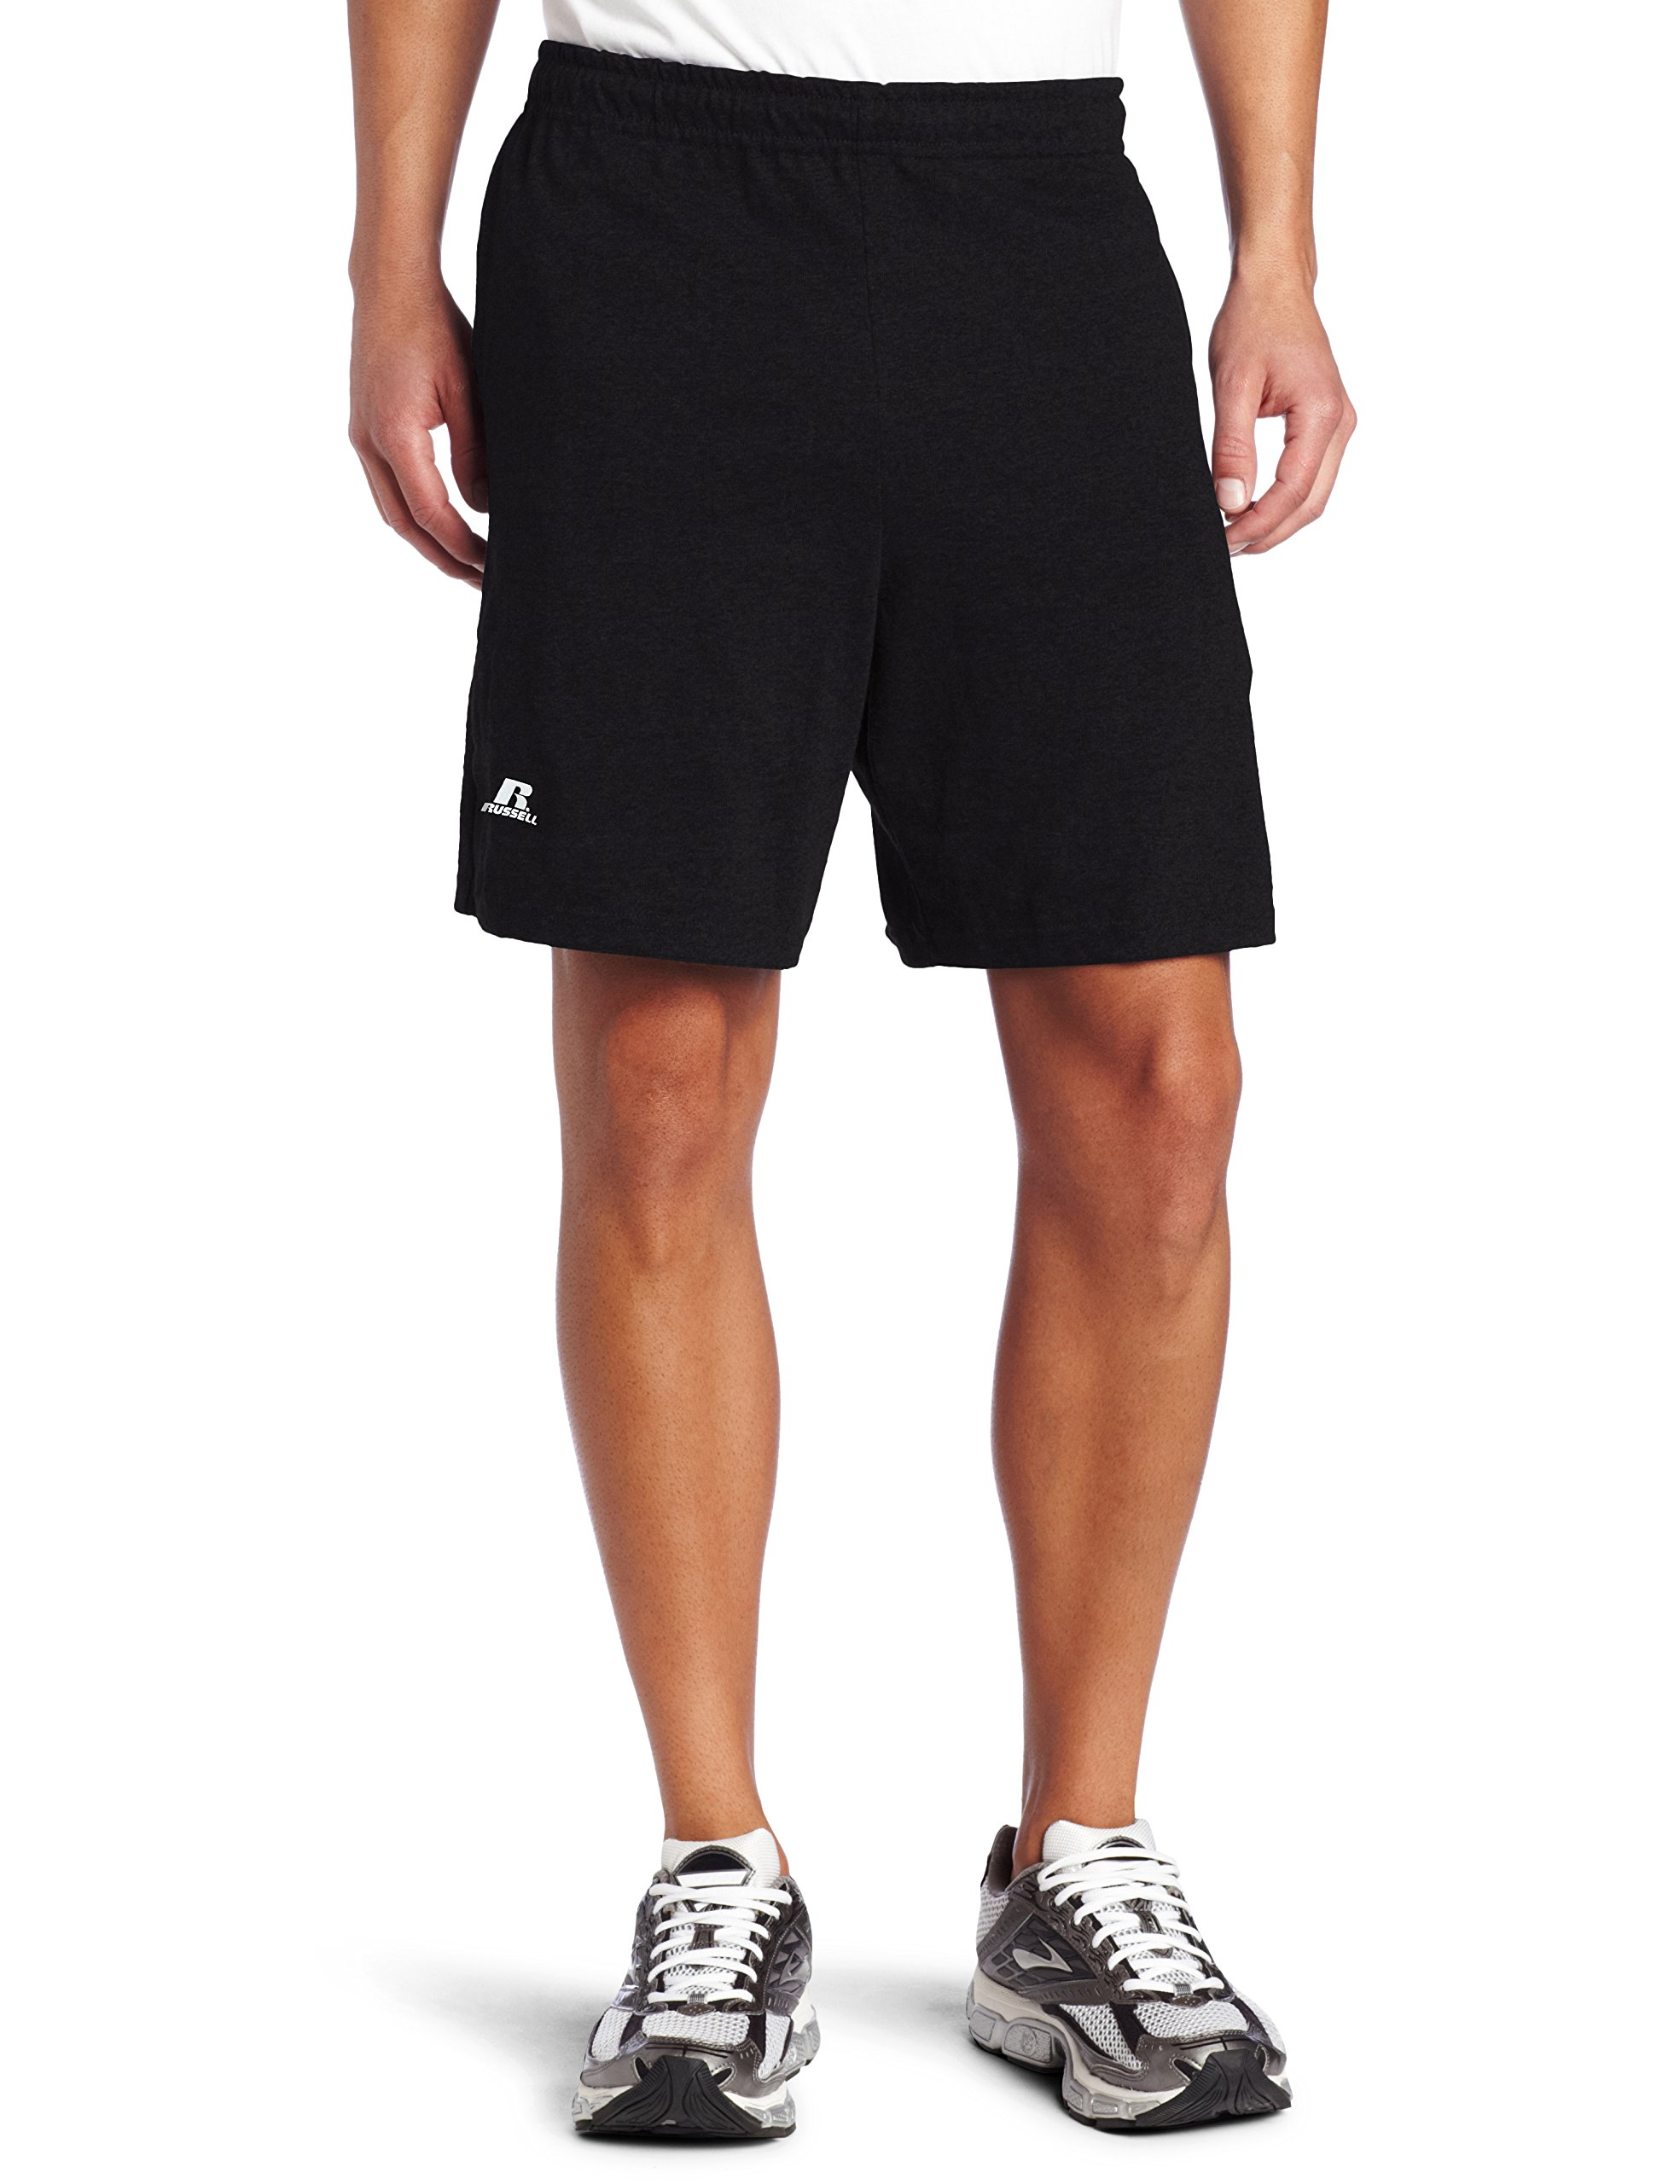 Russell Athletic Men's Cotton Baseline Short with Pockets, Black, 3X-Large